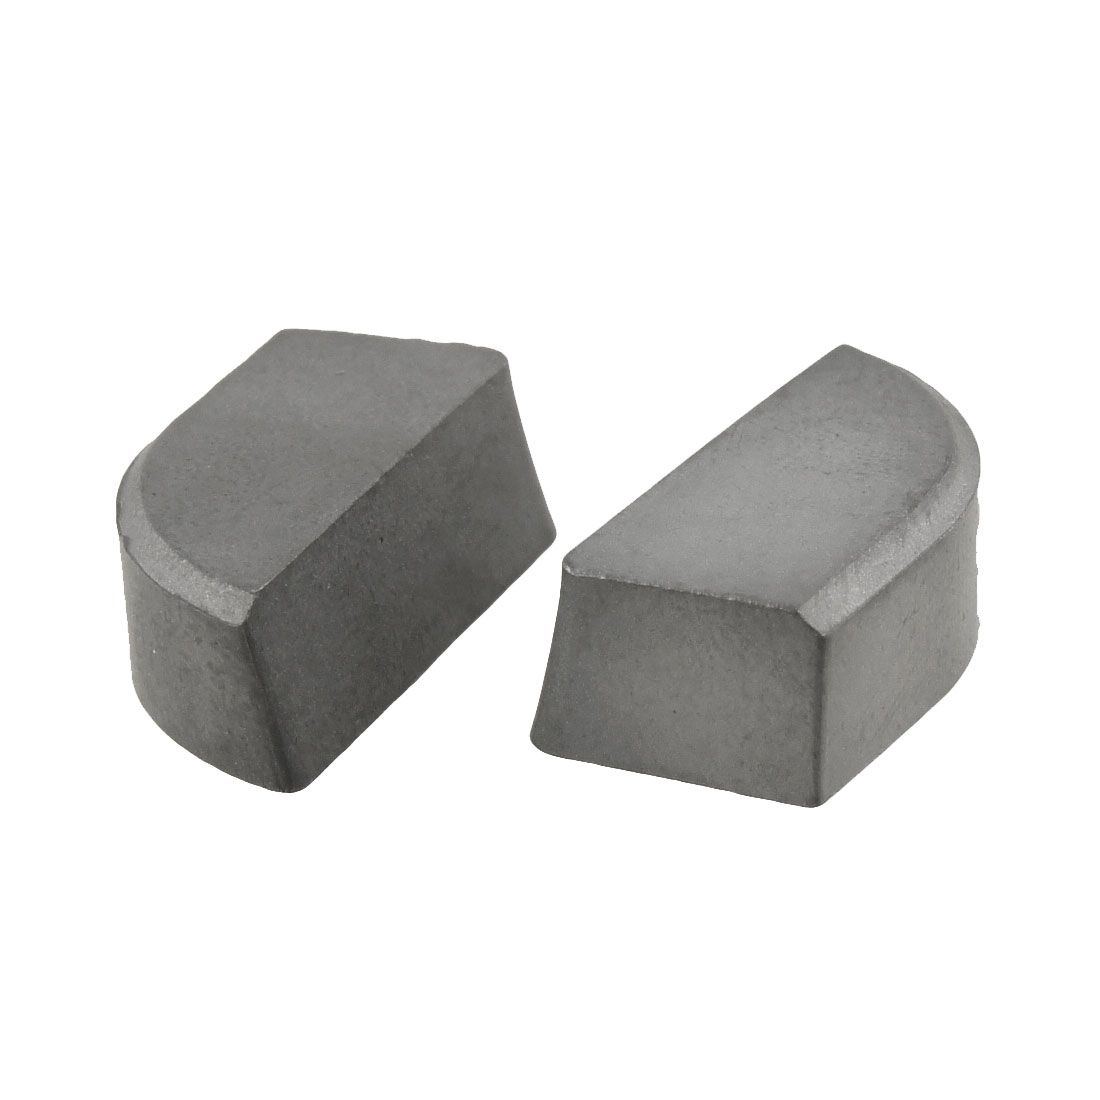 2 Pcs Lathe Tooling Bit Hard Alloy Cemented Carbide Inserts